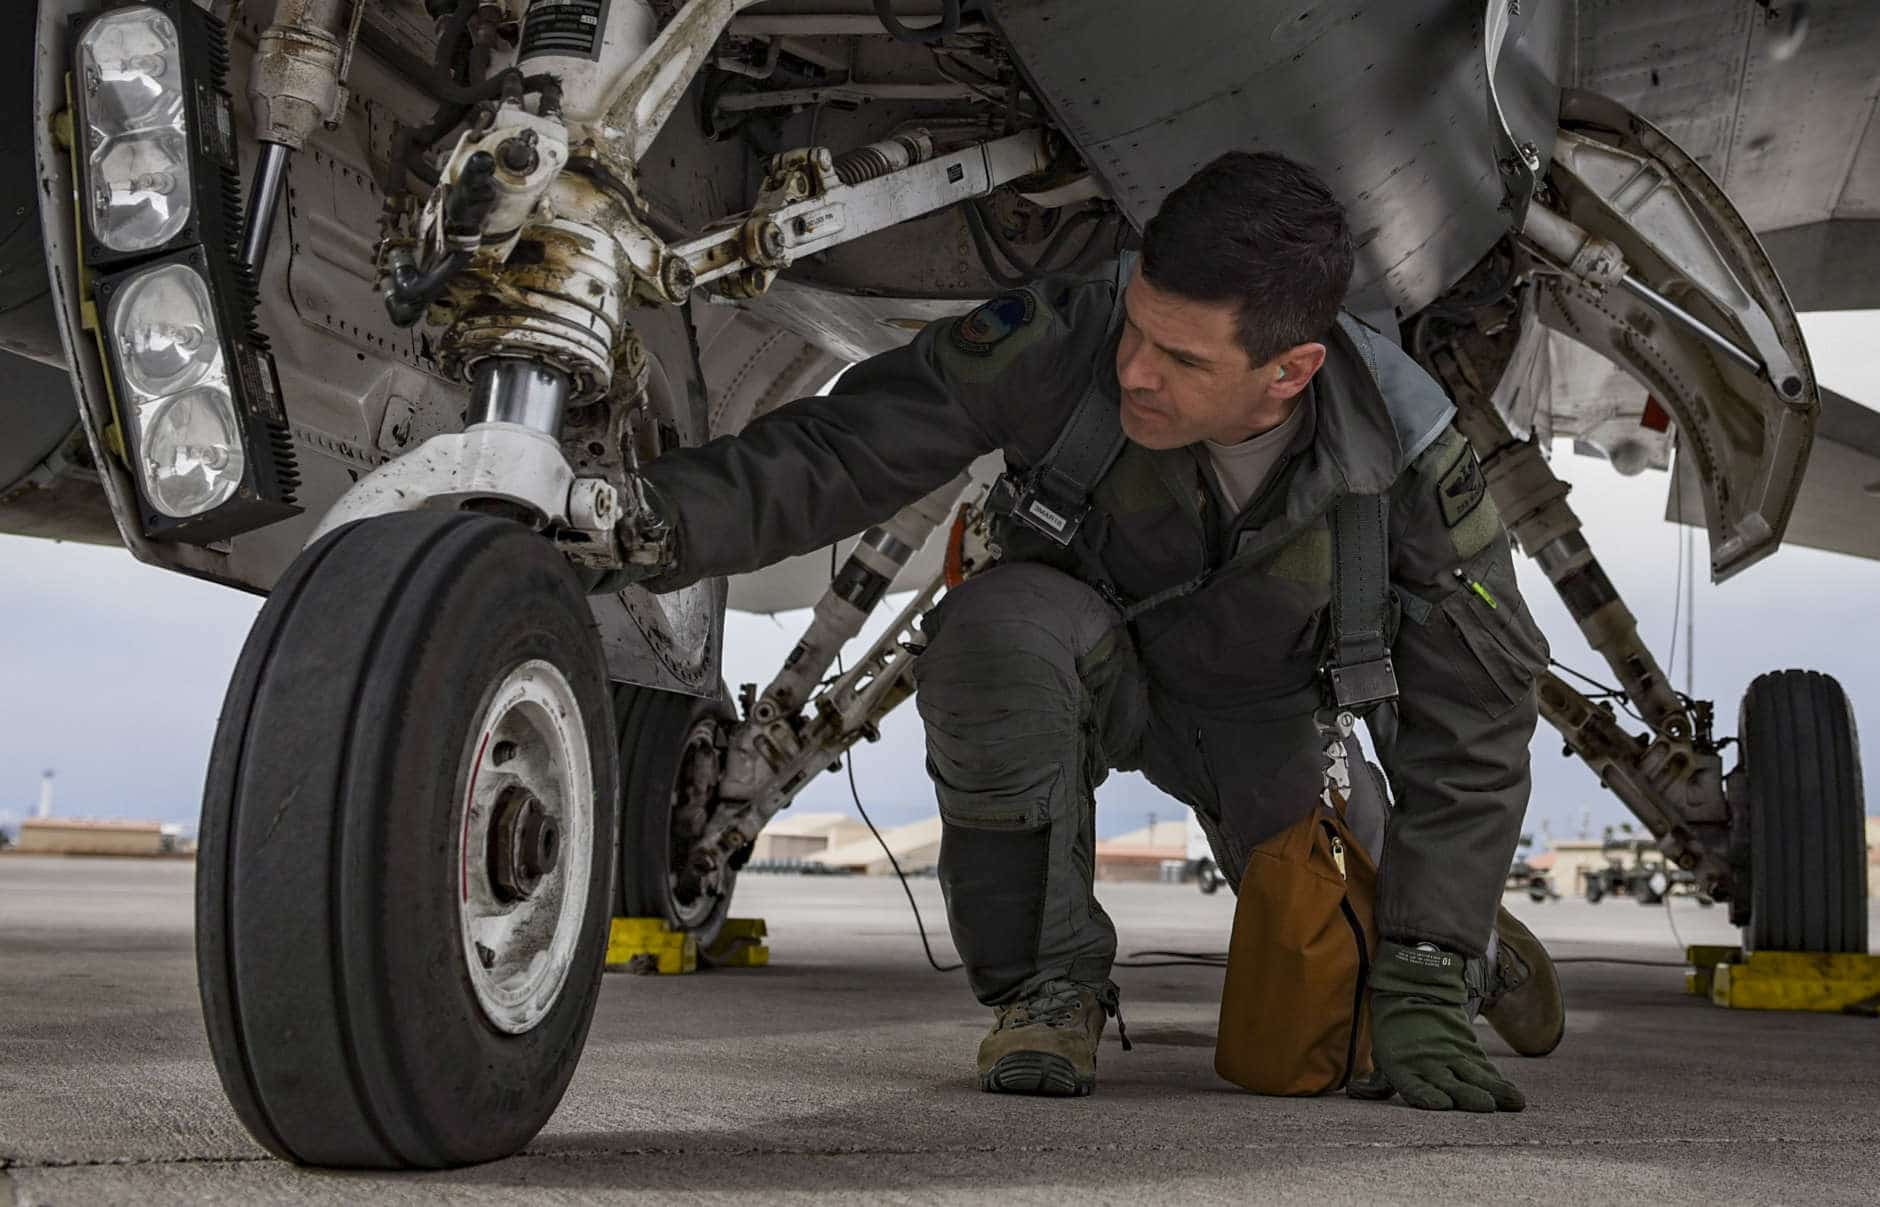 To solve retention challenges, Air Force expands retention